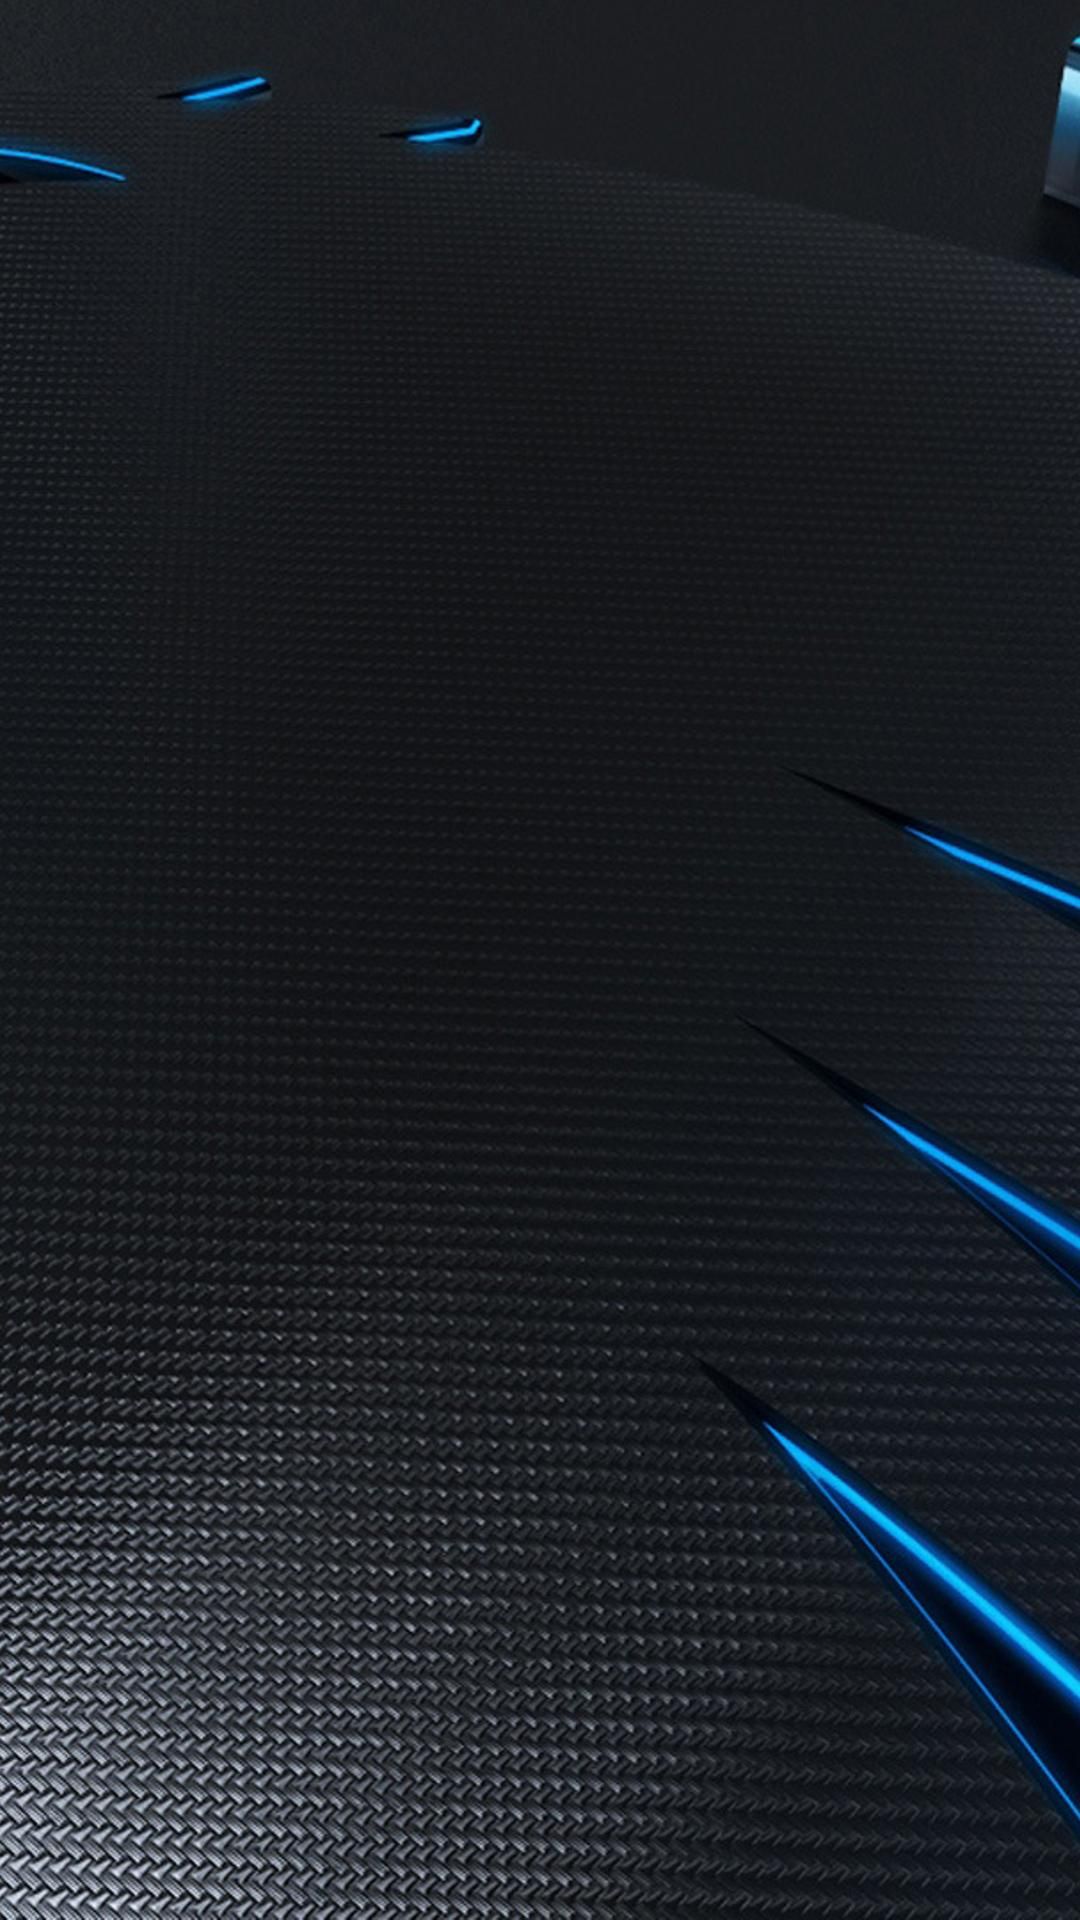 Abstract black and blue HD wallpaper Wallpaper Download ...